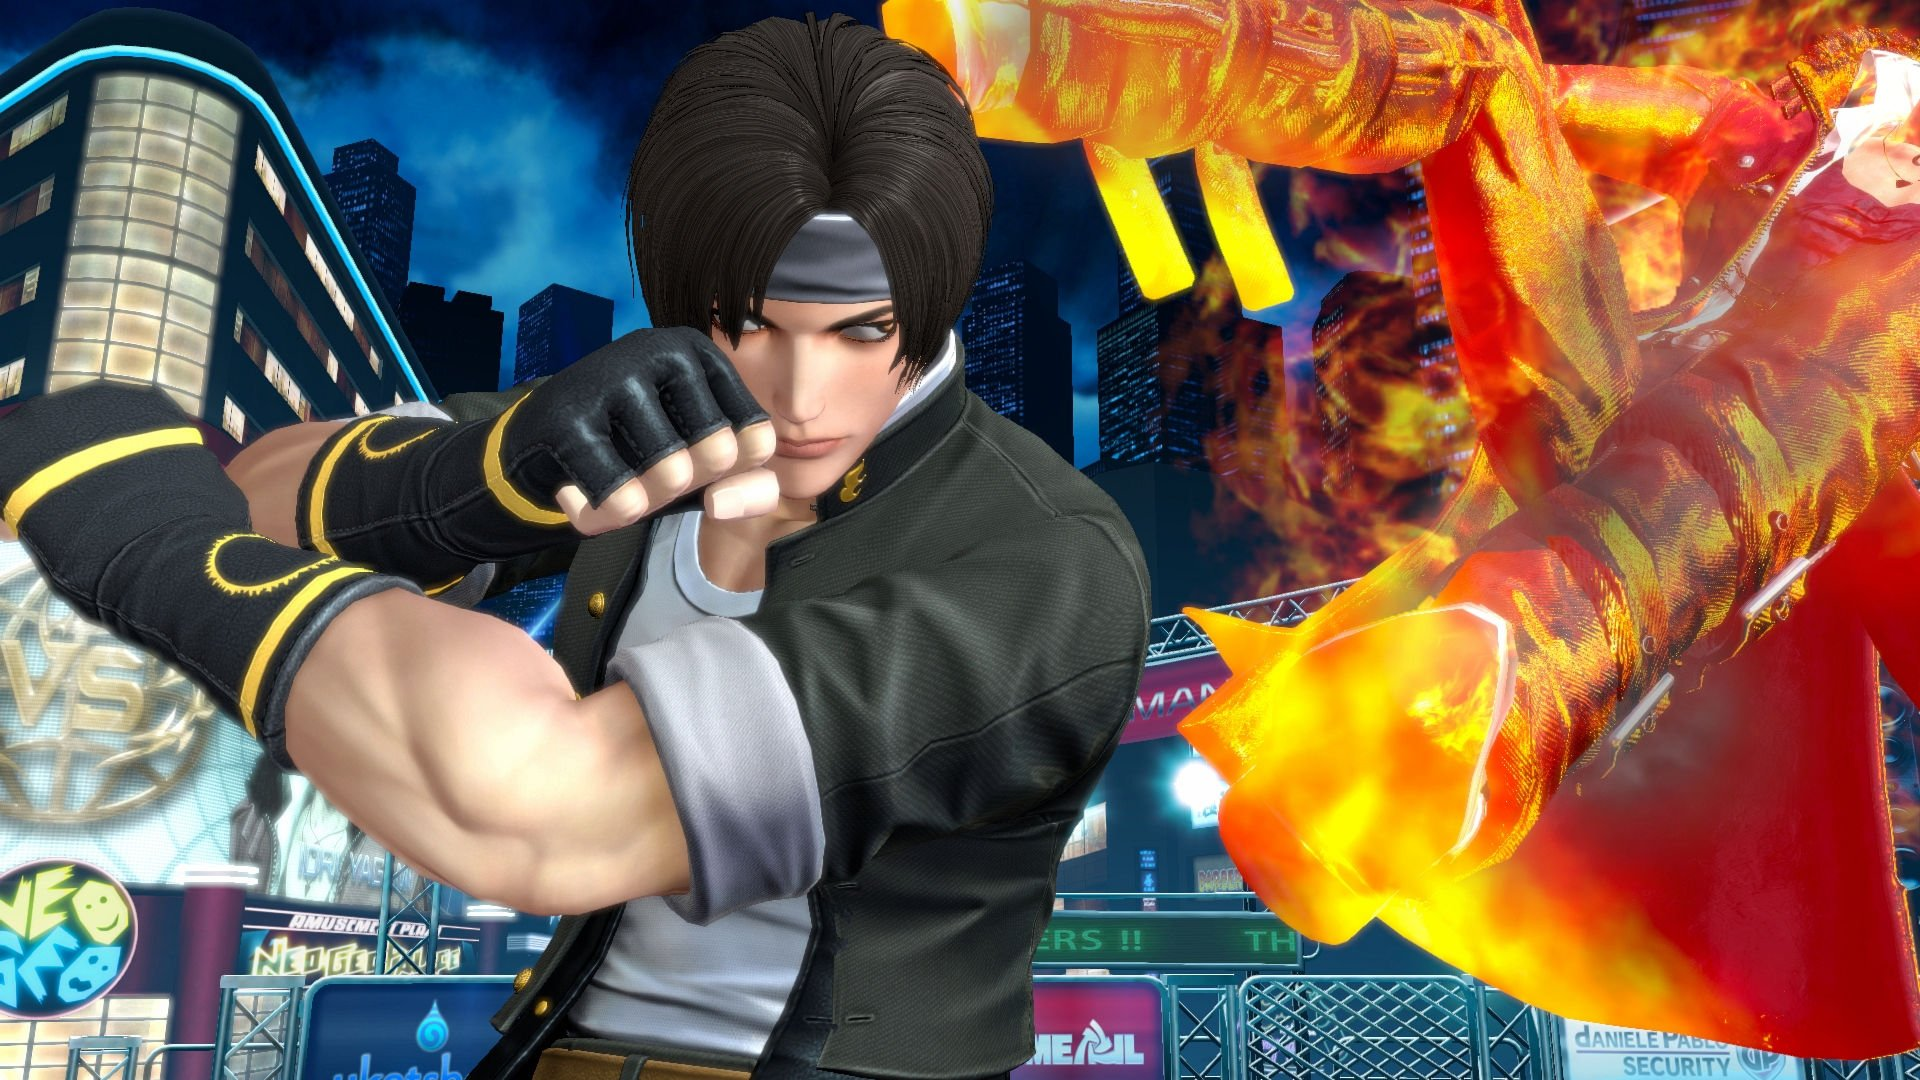 king_of_fighters_xiv-3371157.jpg